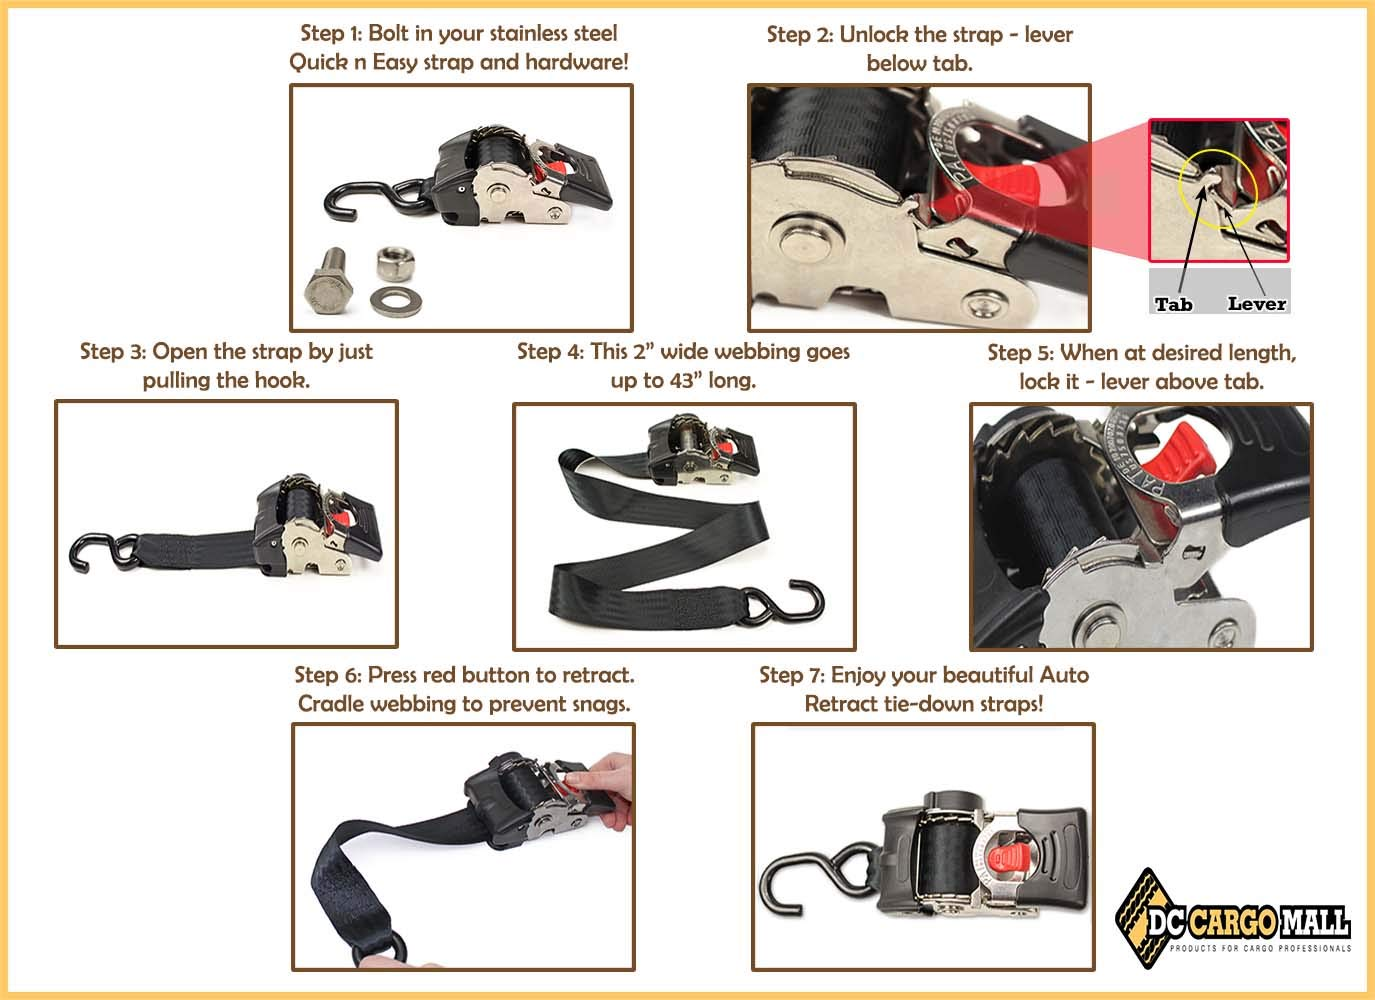 Bikes Pickups DC Cargo Mall ATVs in Trailers 2 x 43 Retractable SELF-CONTAINED Compact Bolt-on Cargo Strap Tiedowns for Motorcycles Trucks Garages 2 Auto Retract NO-RATCHETING Bolt-Down Ratchet Straps